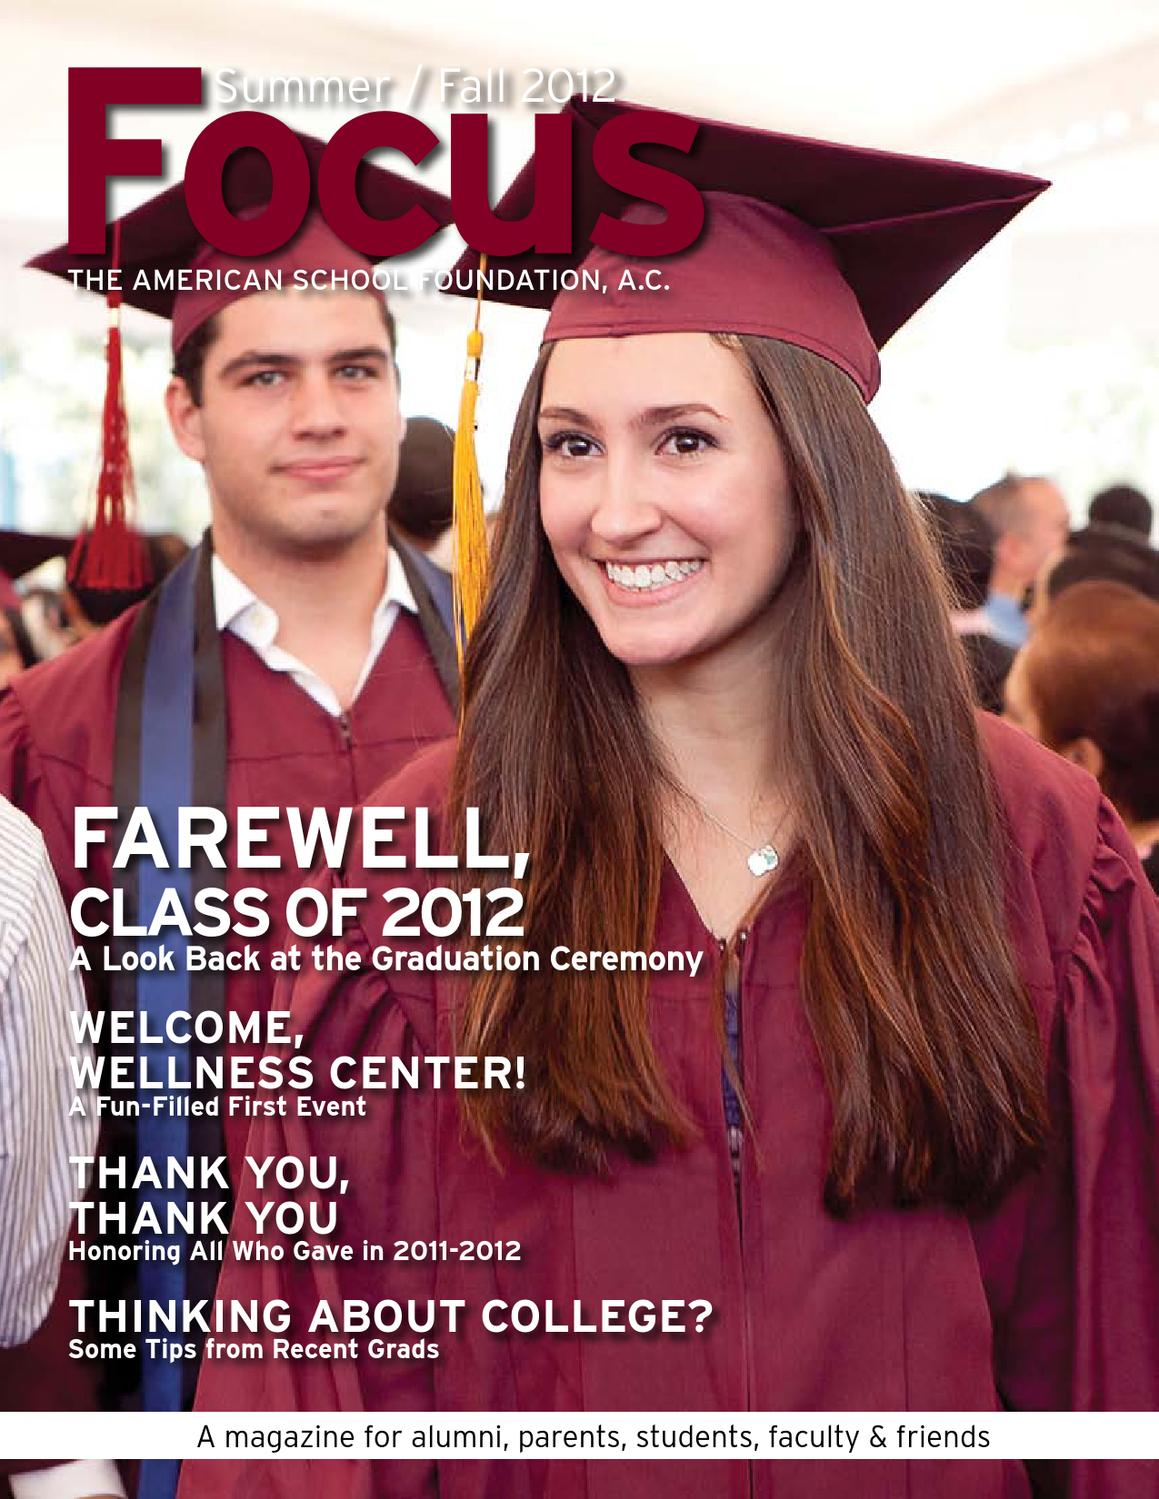 focus spring 2011 by the american school foundation a c issuu